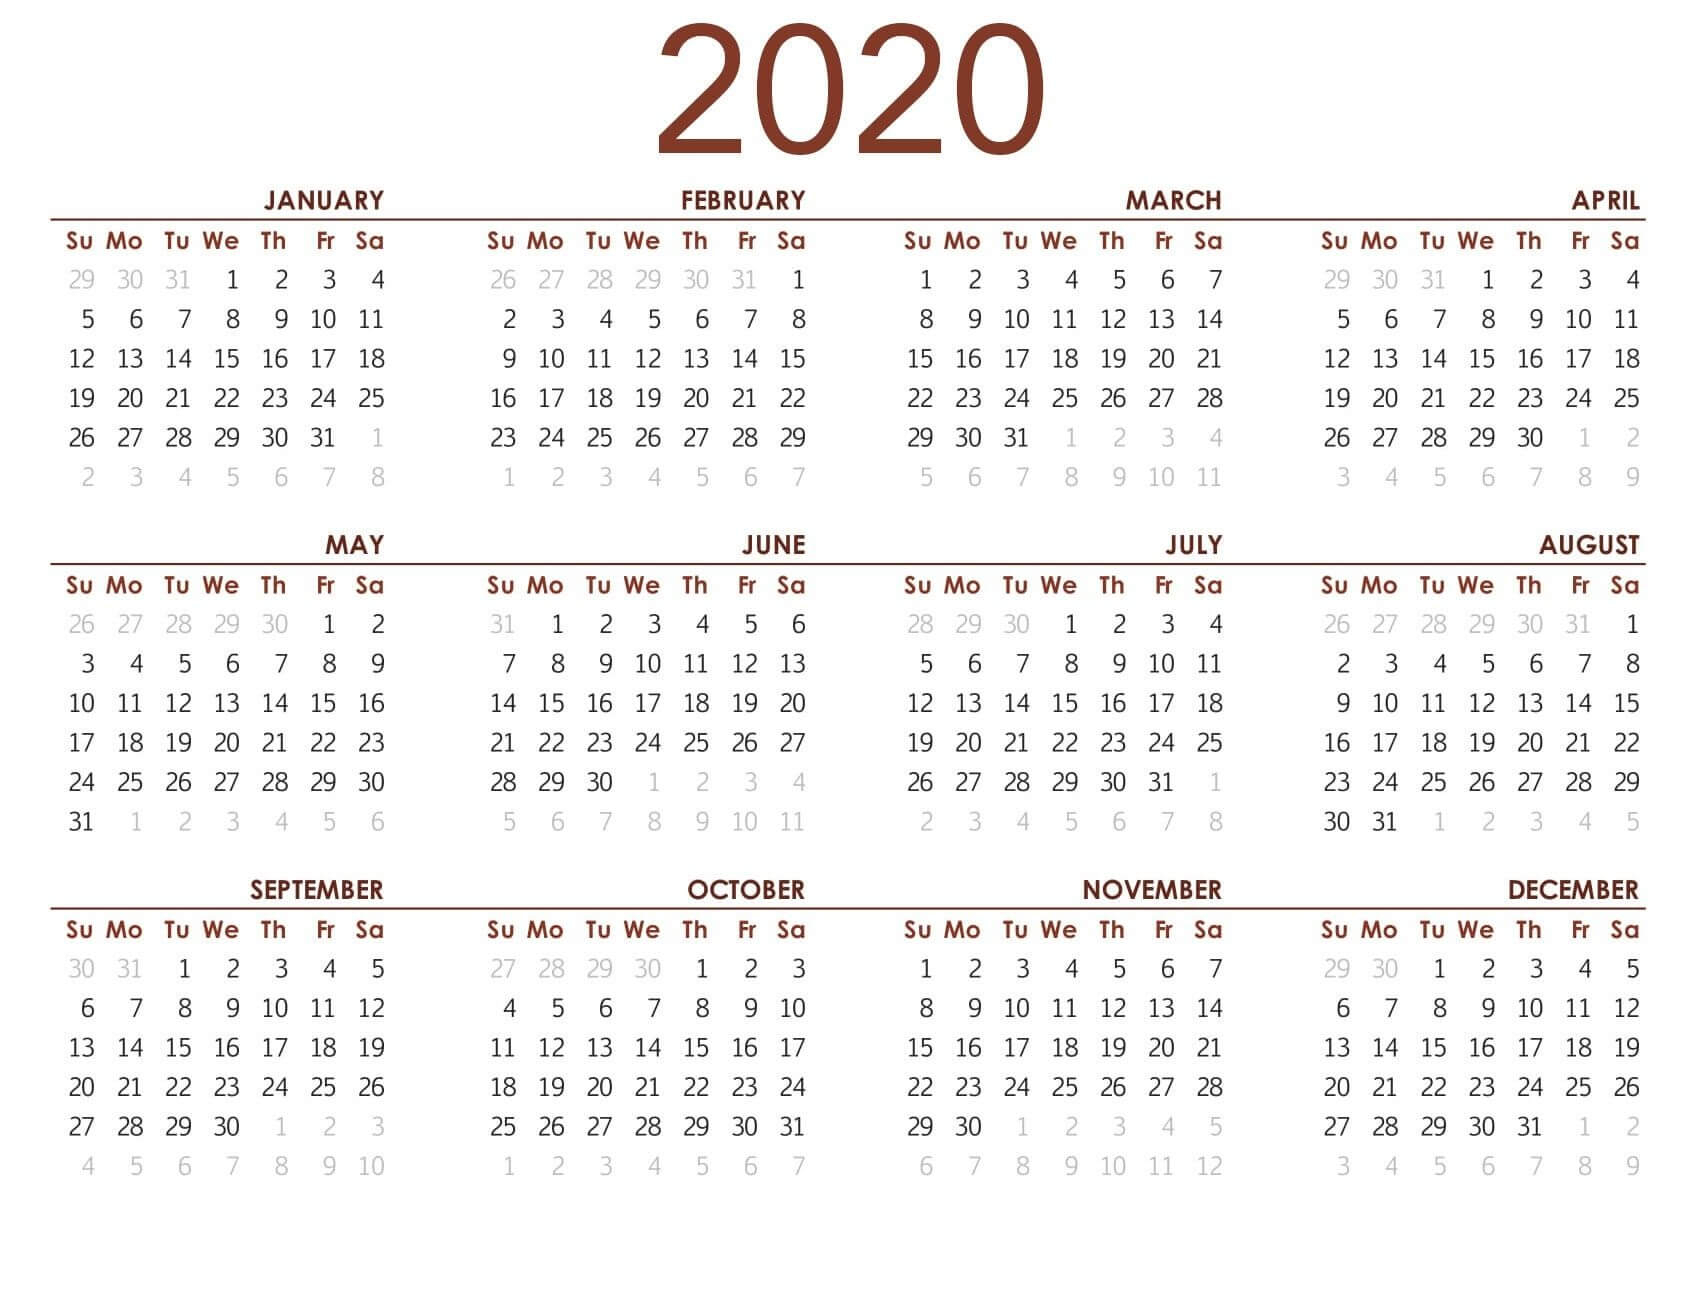 Printable Calendar 2020 With Notes - 2019 Calendars For in Calendar At A Glance With Usa Holidays For 2020